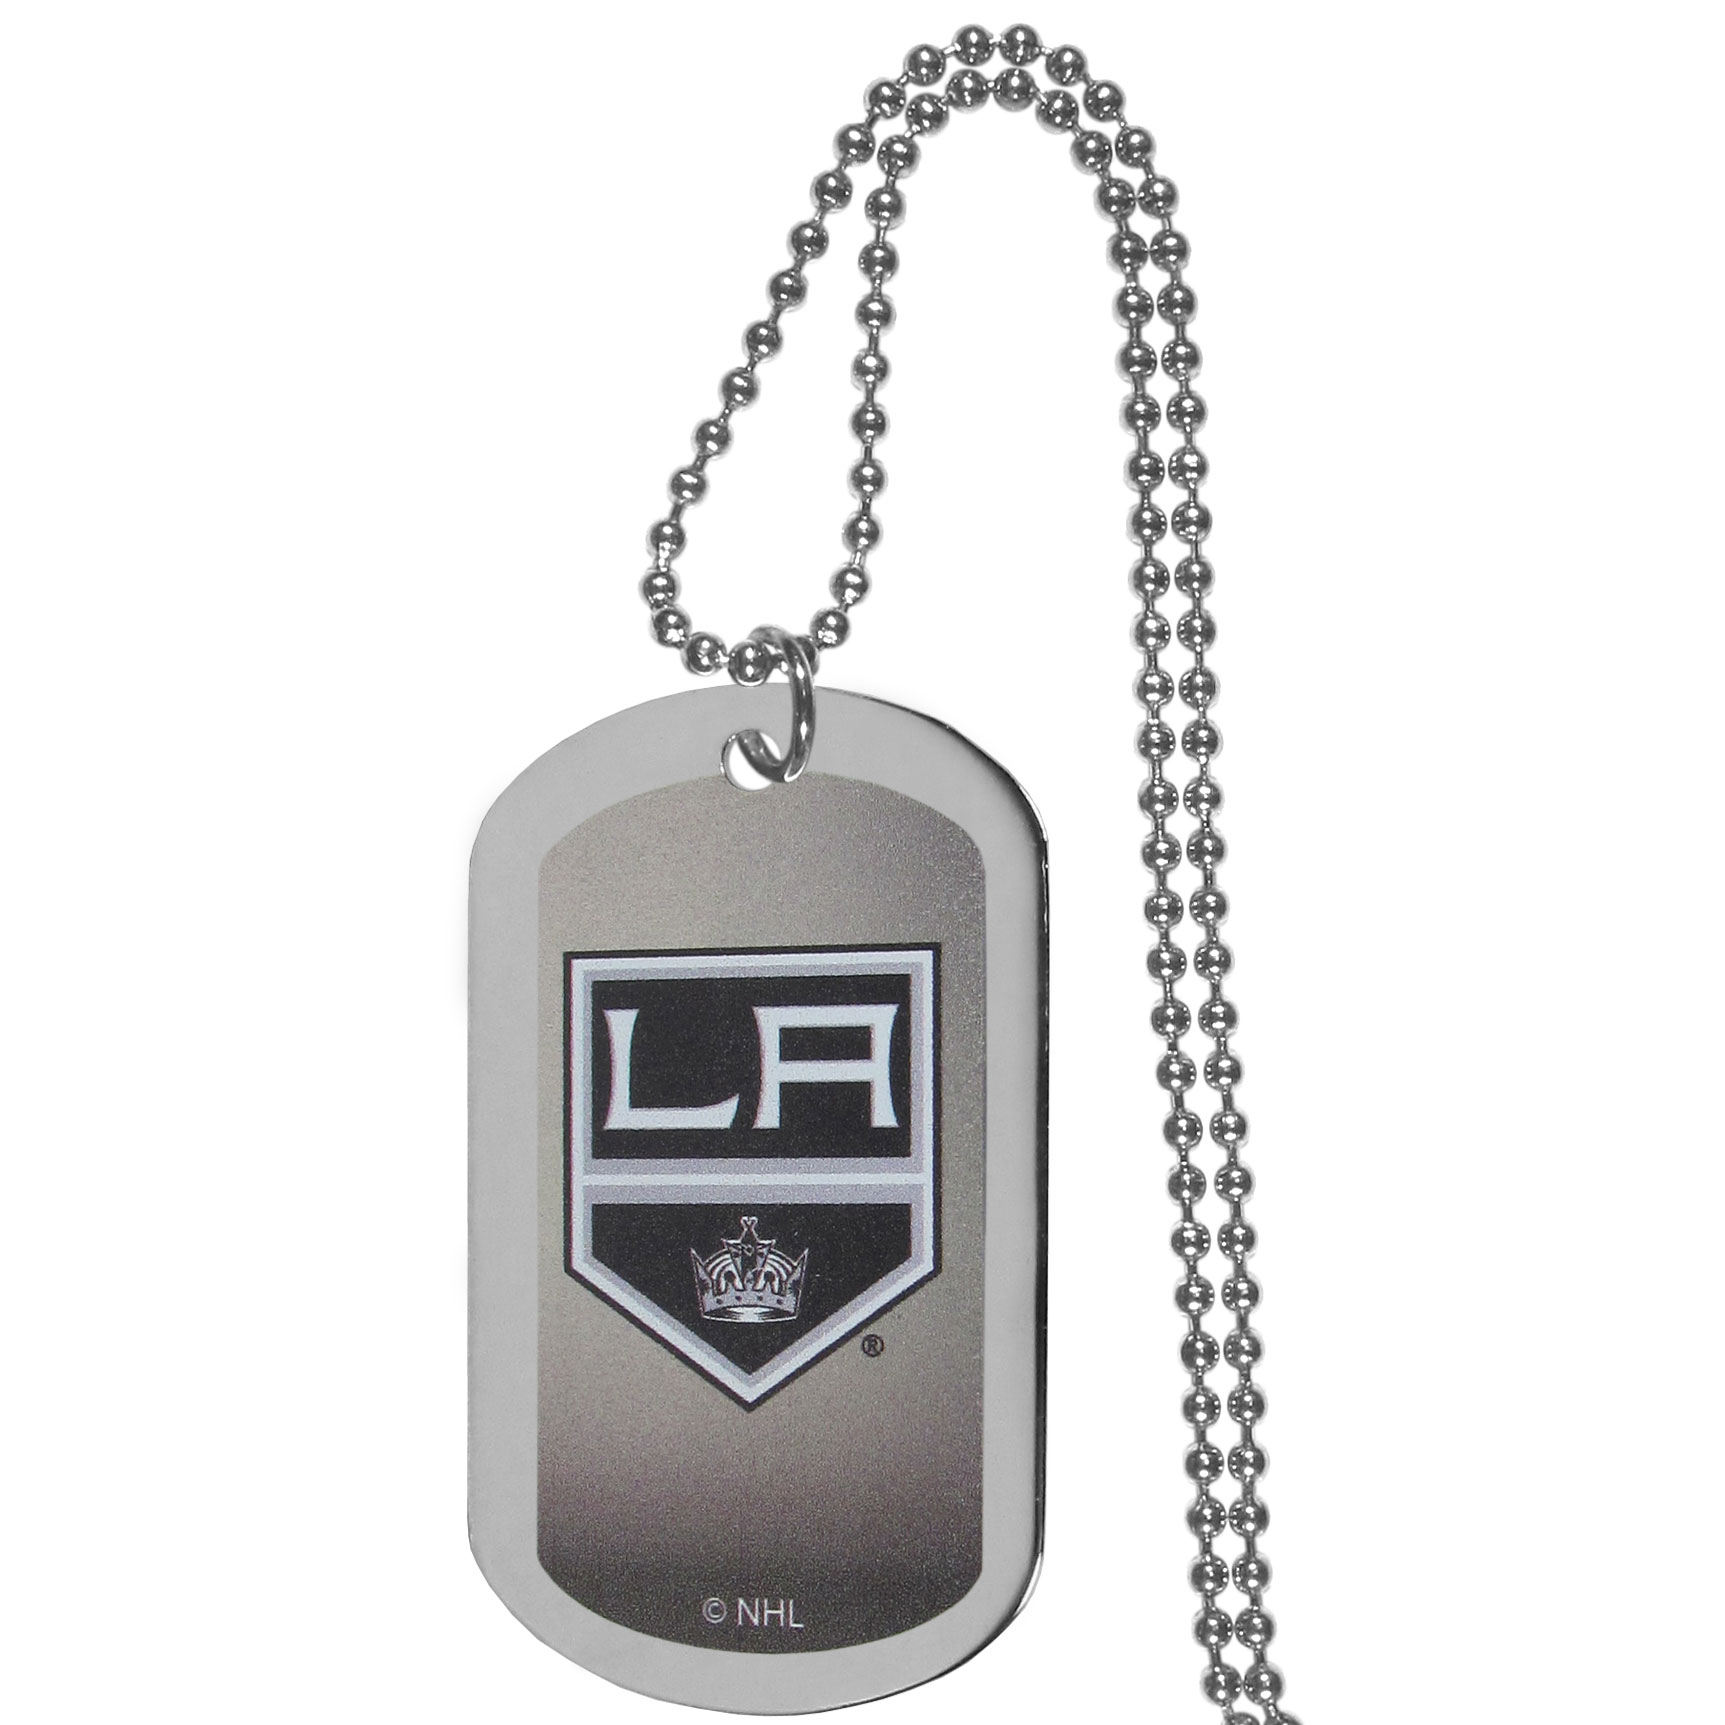 Los Angeles Kings® Team Tag Necklace - Dog tag necklaces are a fashion statement that is here to stay. The sporty version of the classic tag features a gradient print in team colors featuring a full color team logo over a high polish tag to create a bold and sporty look. The tag comes on a 26 inch ball chain with a ball and joint clasp. Any Los Angeles Kings® would be proud to wear this attractive fashion accessory.